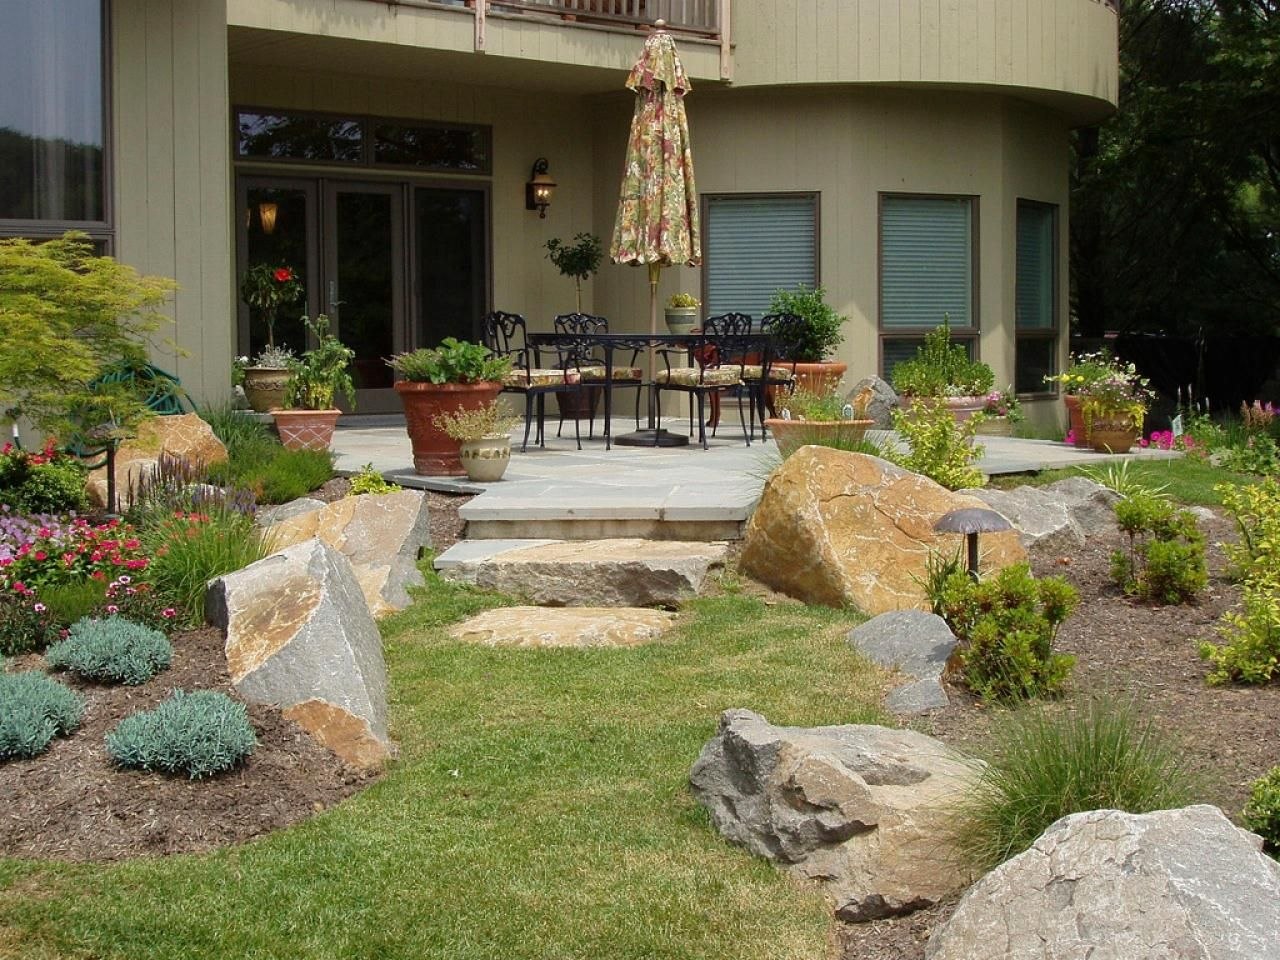 patio garden ideas. The Right Patio Landscaping Ideas Will Help Complement Your Outdoor Living Space. Garden U